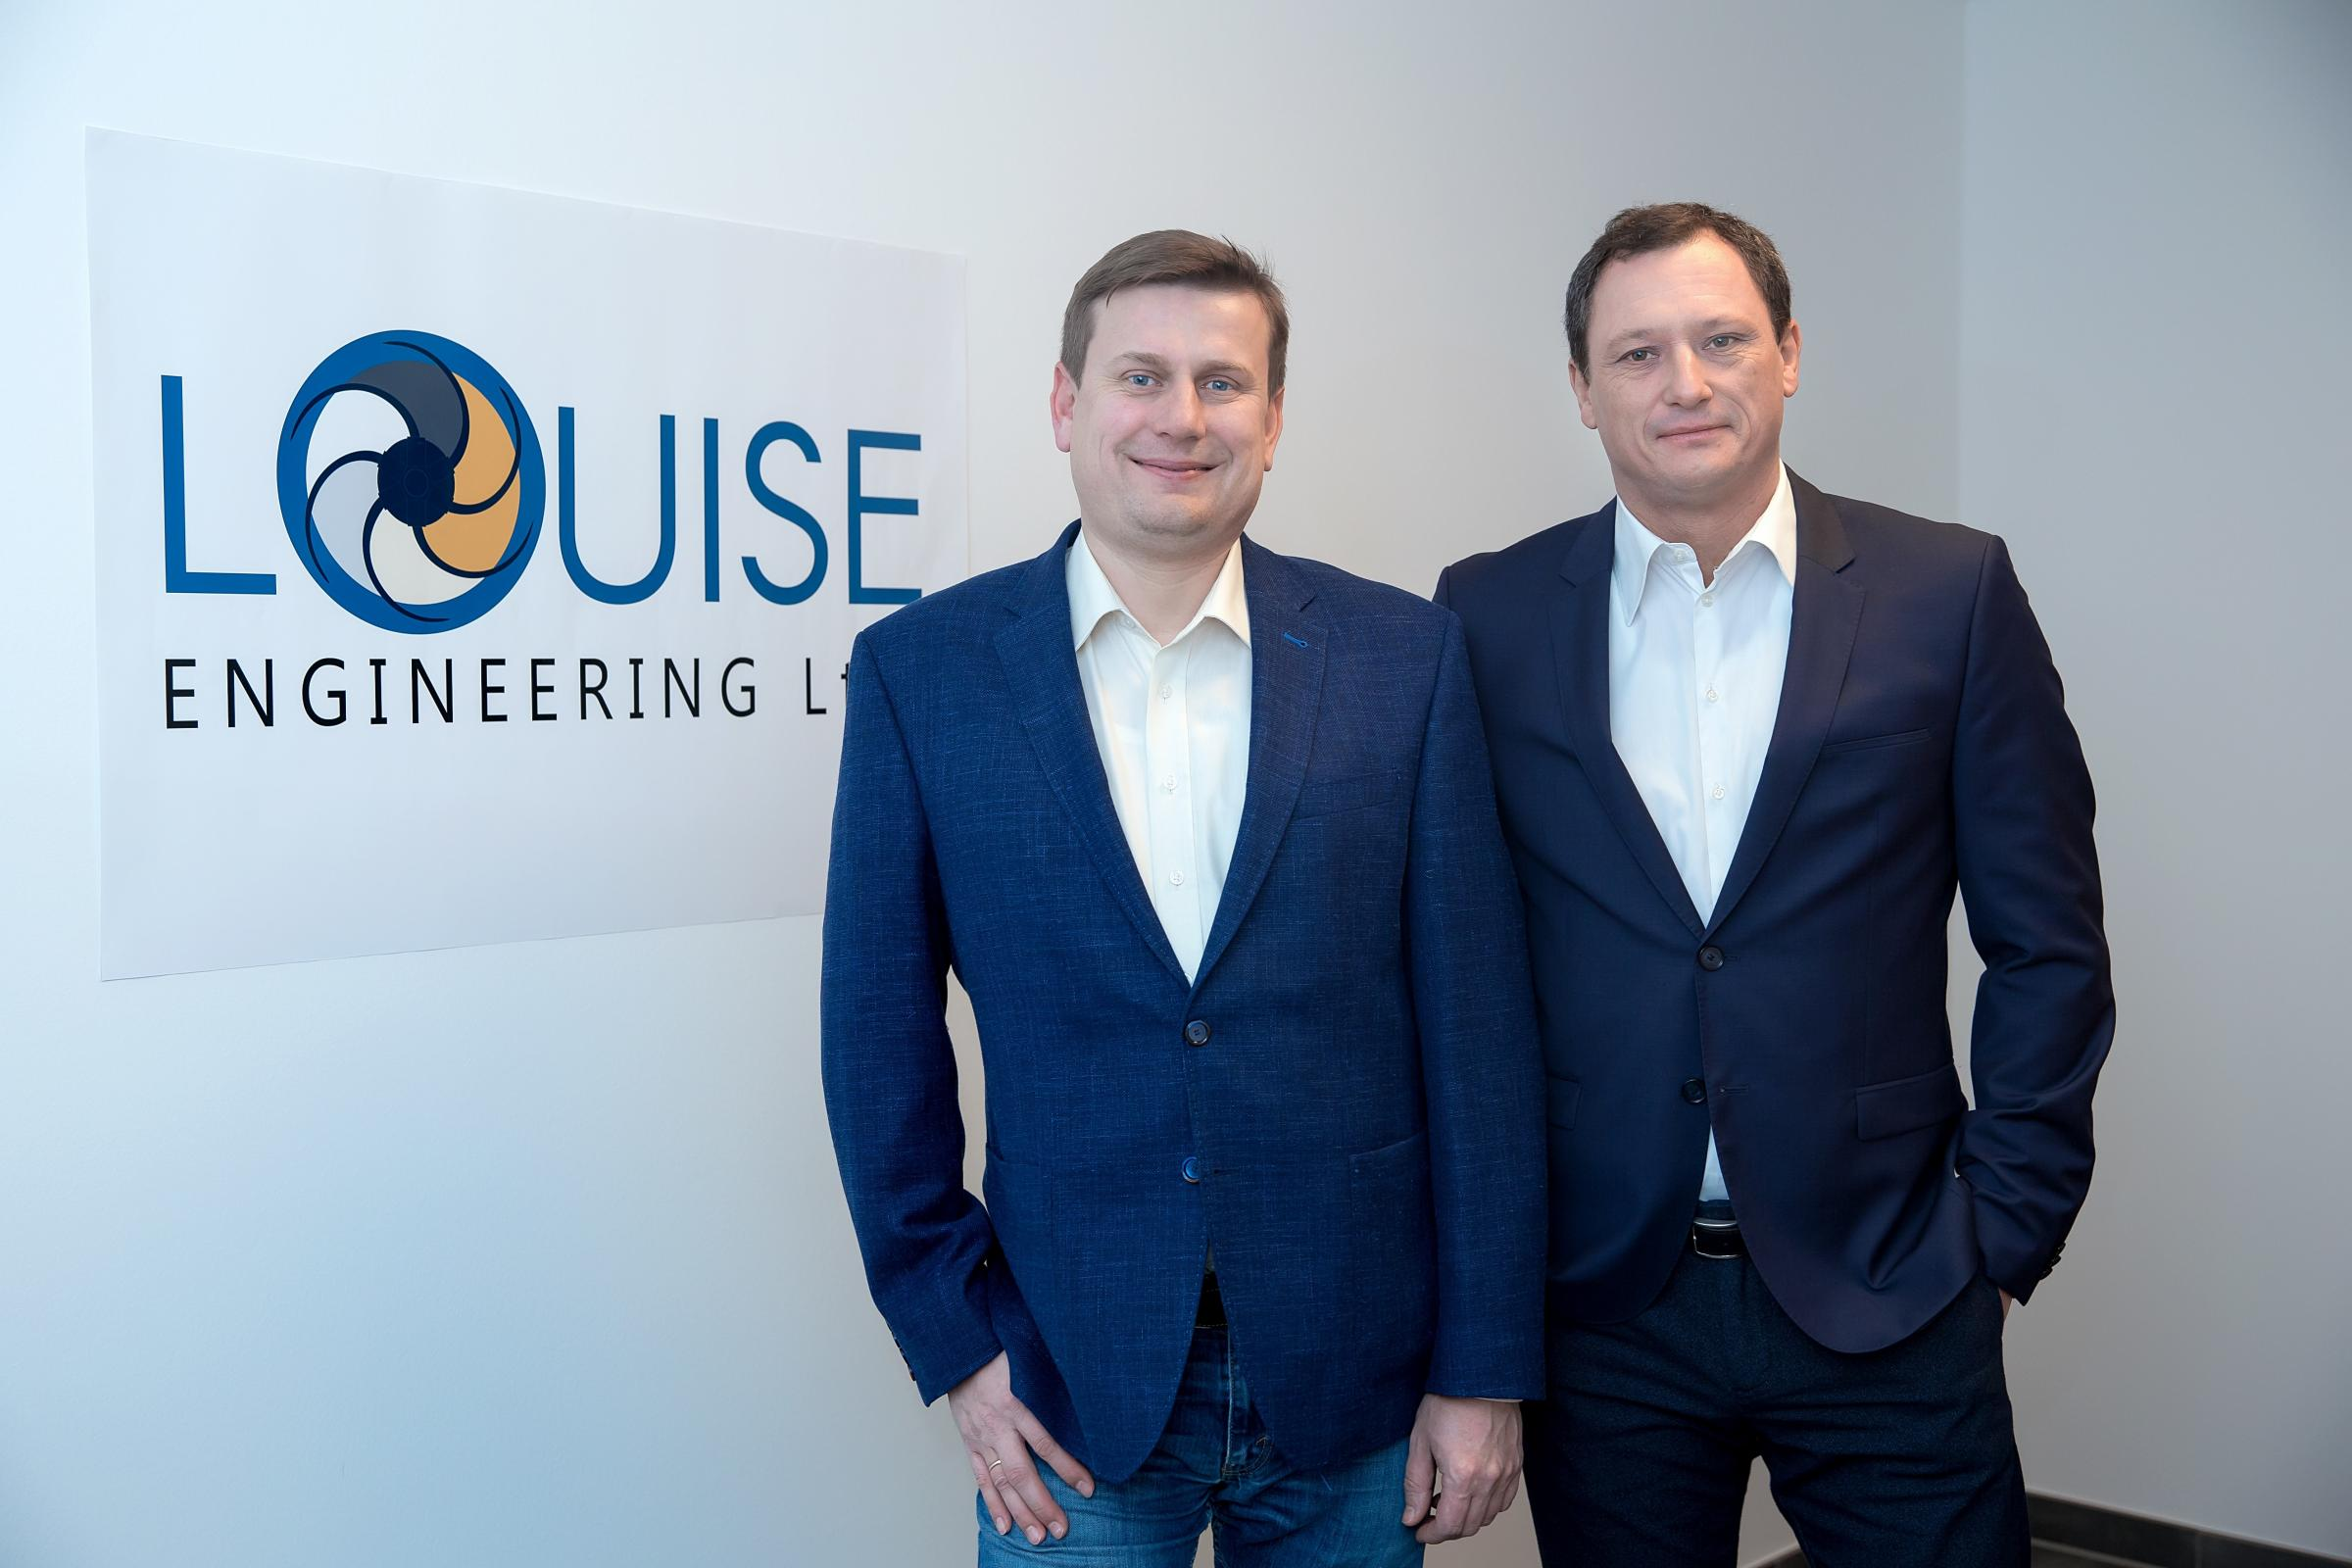 New owners of Louise Engineering, Middlesbrough, from left, Mykola Popovych and Peter Gasch